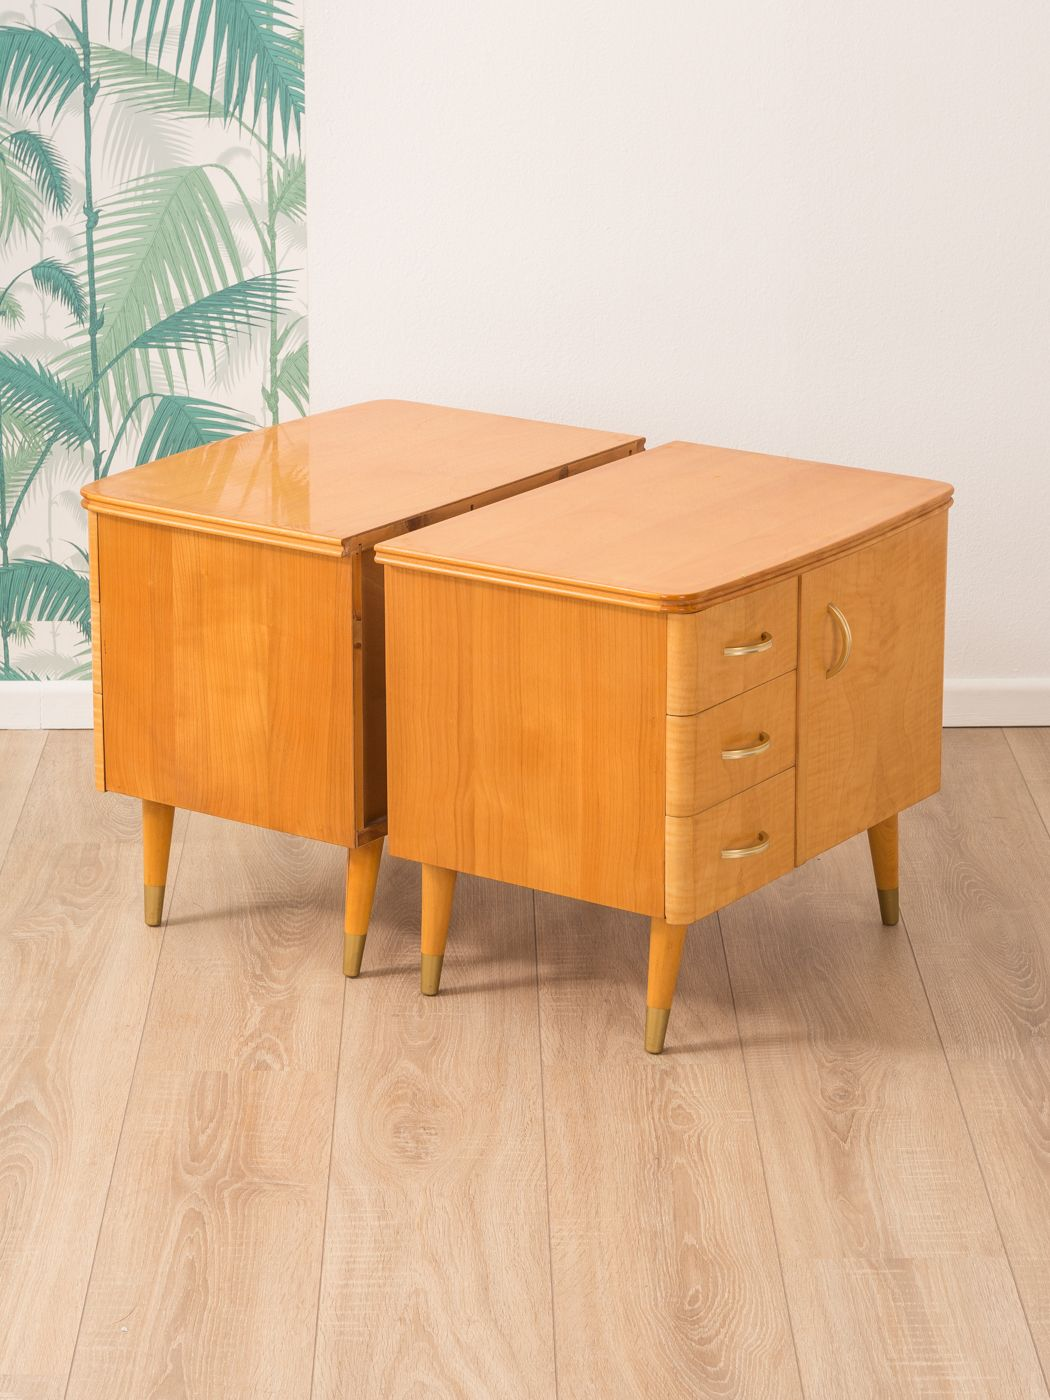 Retro Style Container Bedside Table: Set Of 2 Vintage Bedside Tables In Cherrywood 1950